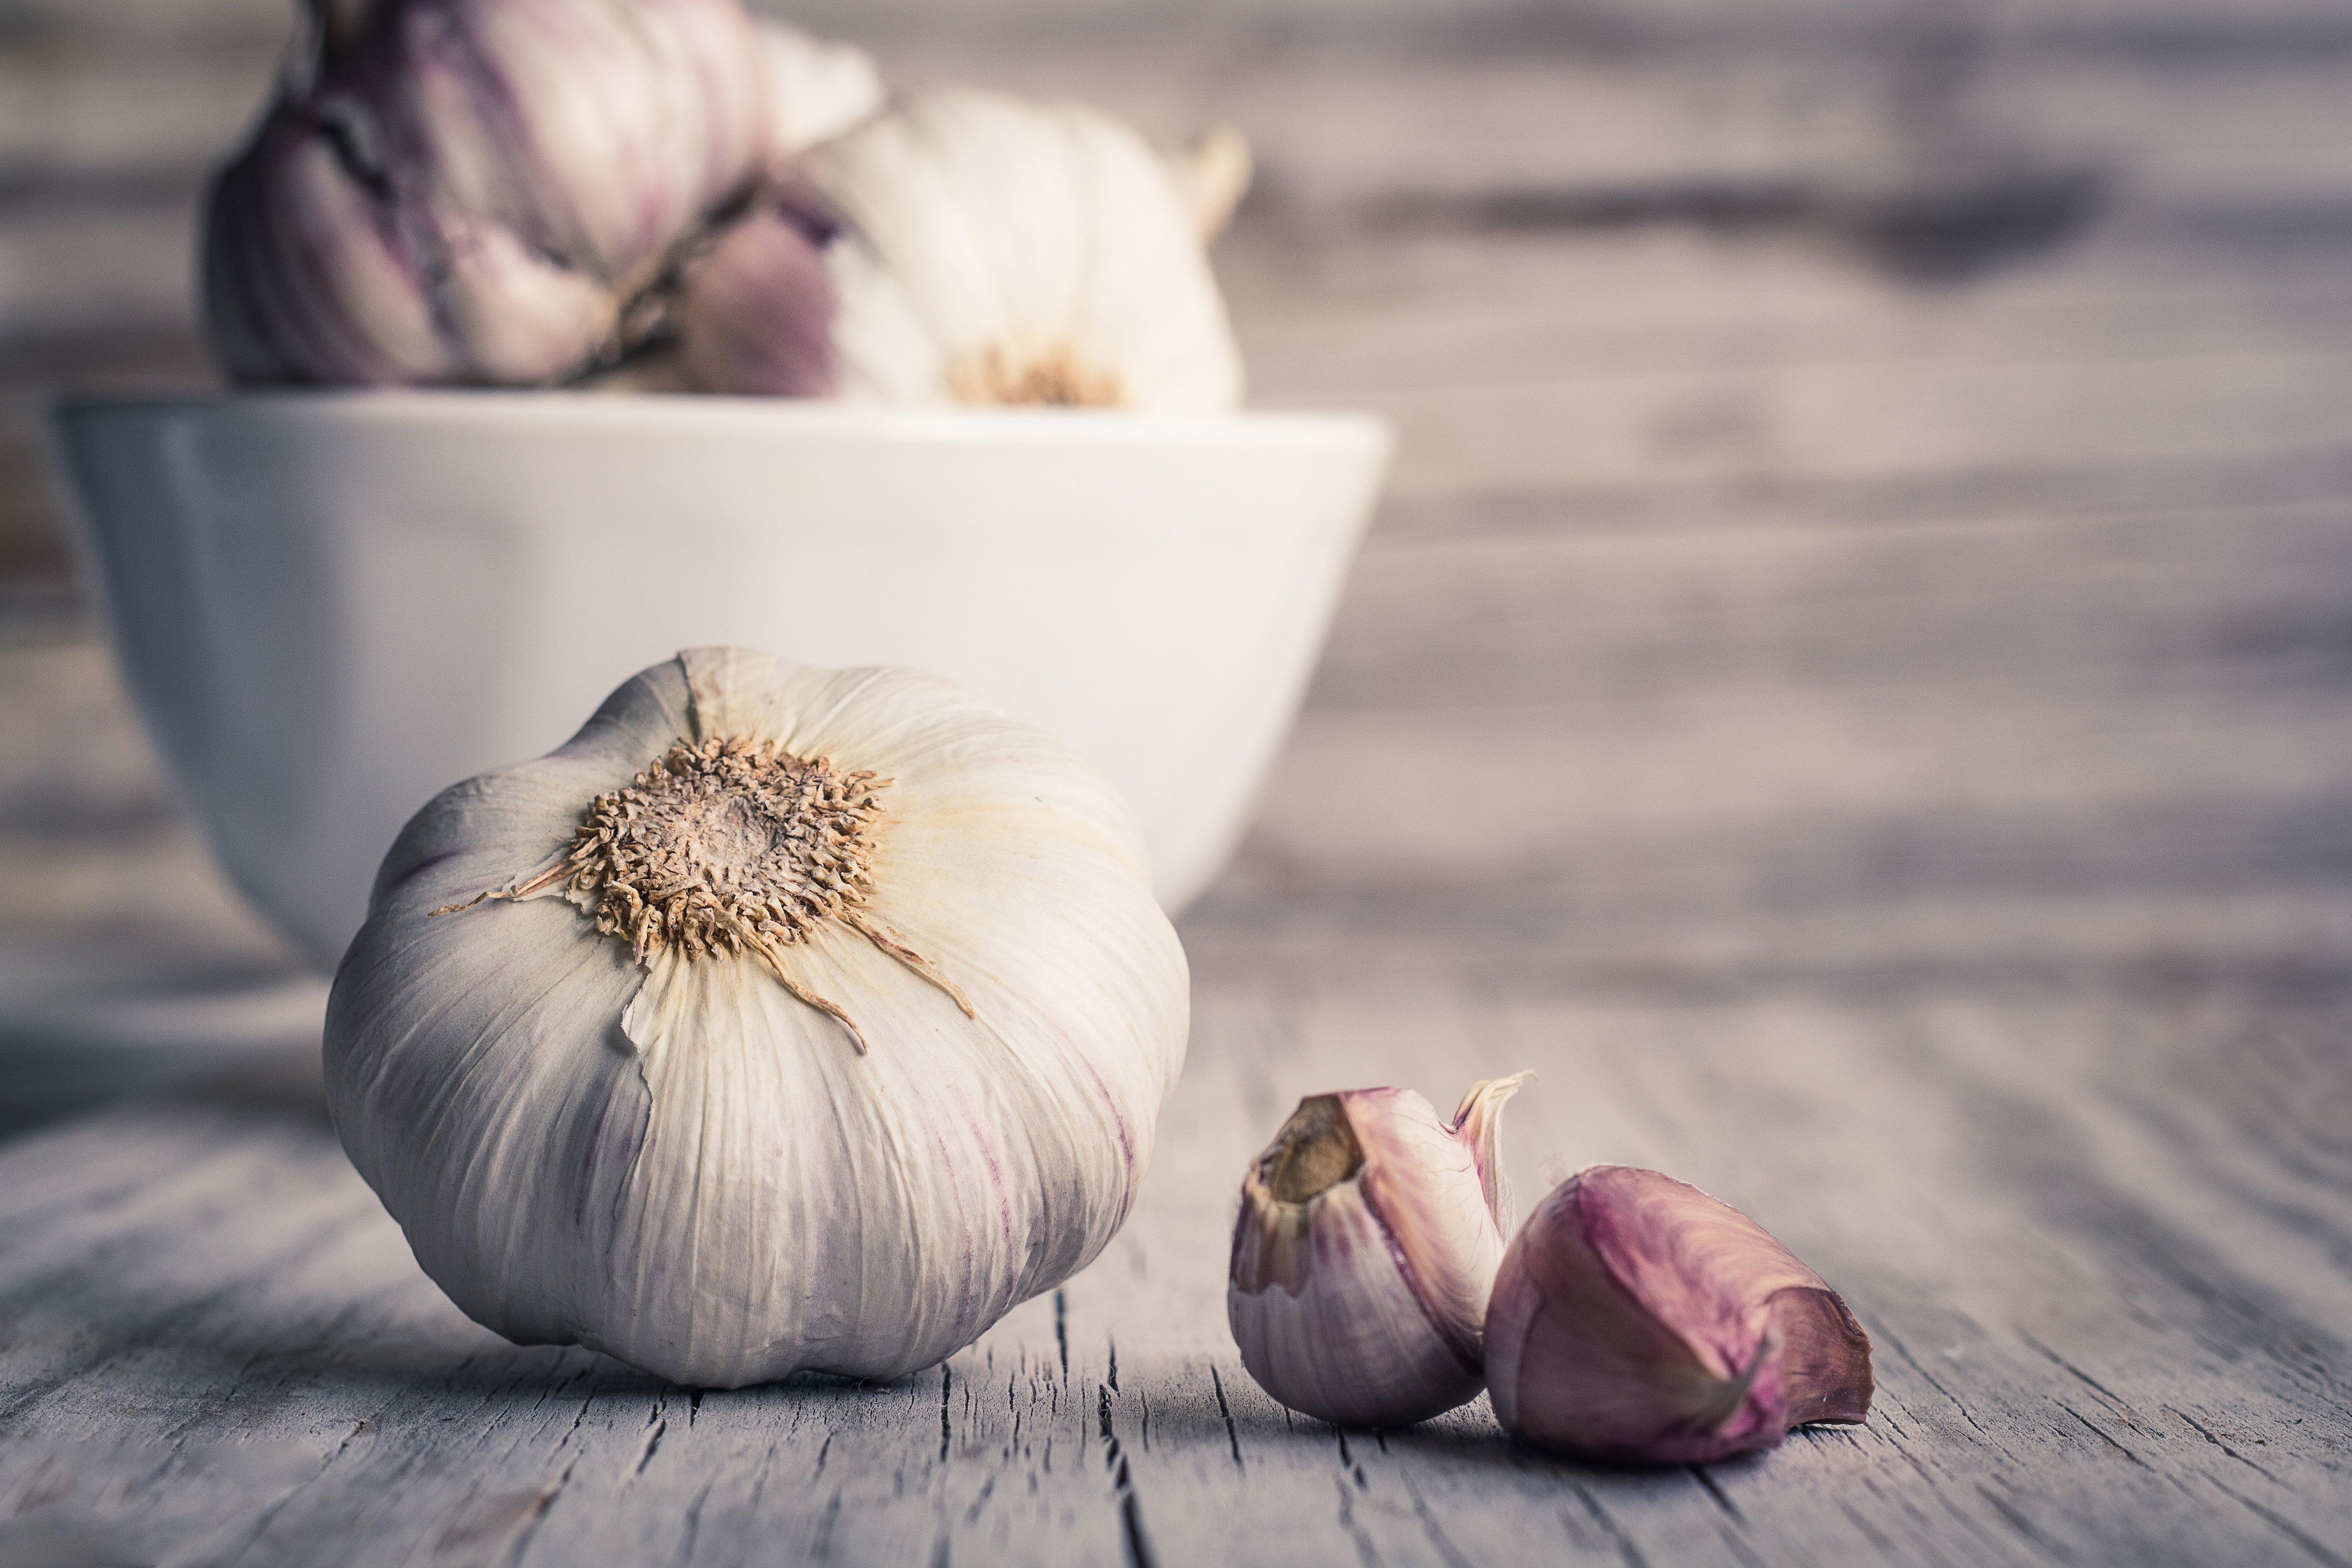 Garlic bulbs and cloves on wooden table